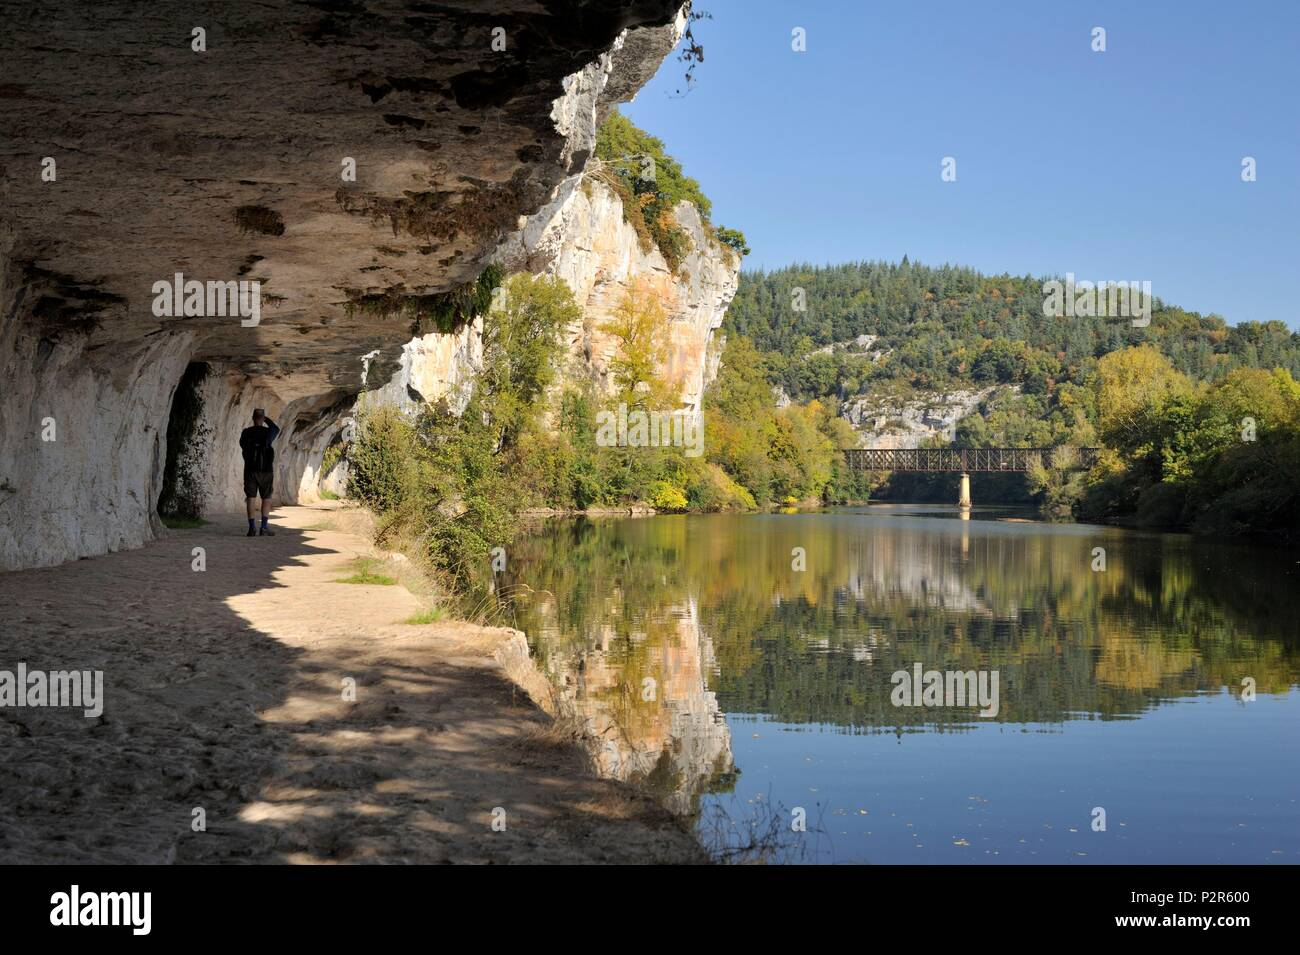 France, Lot, Saint Cirq Lapopie, between Saint Cirq Lapopie and Bouziès, towpath Ganil on the banks of the Lot and the bas relief of the sculptor Daniel Monnier - Stock Image